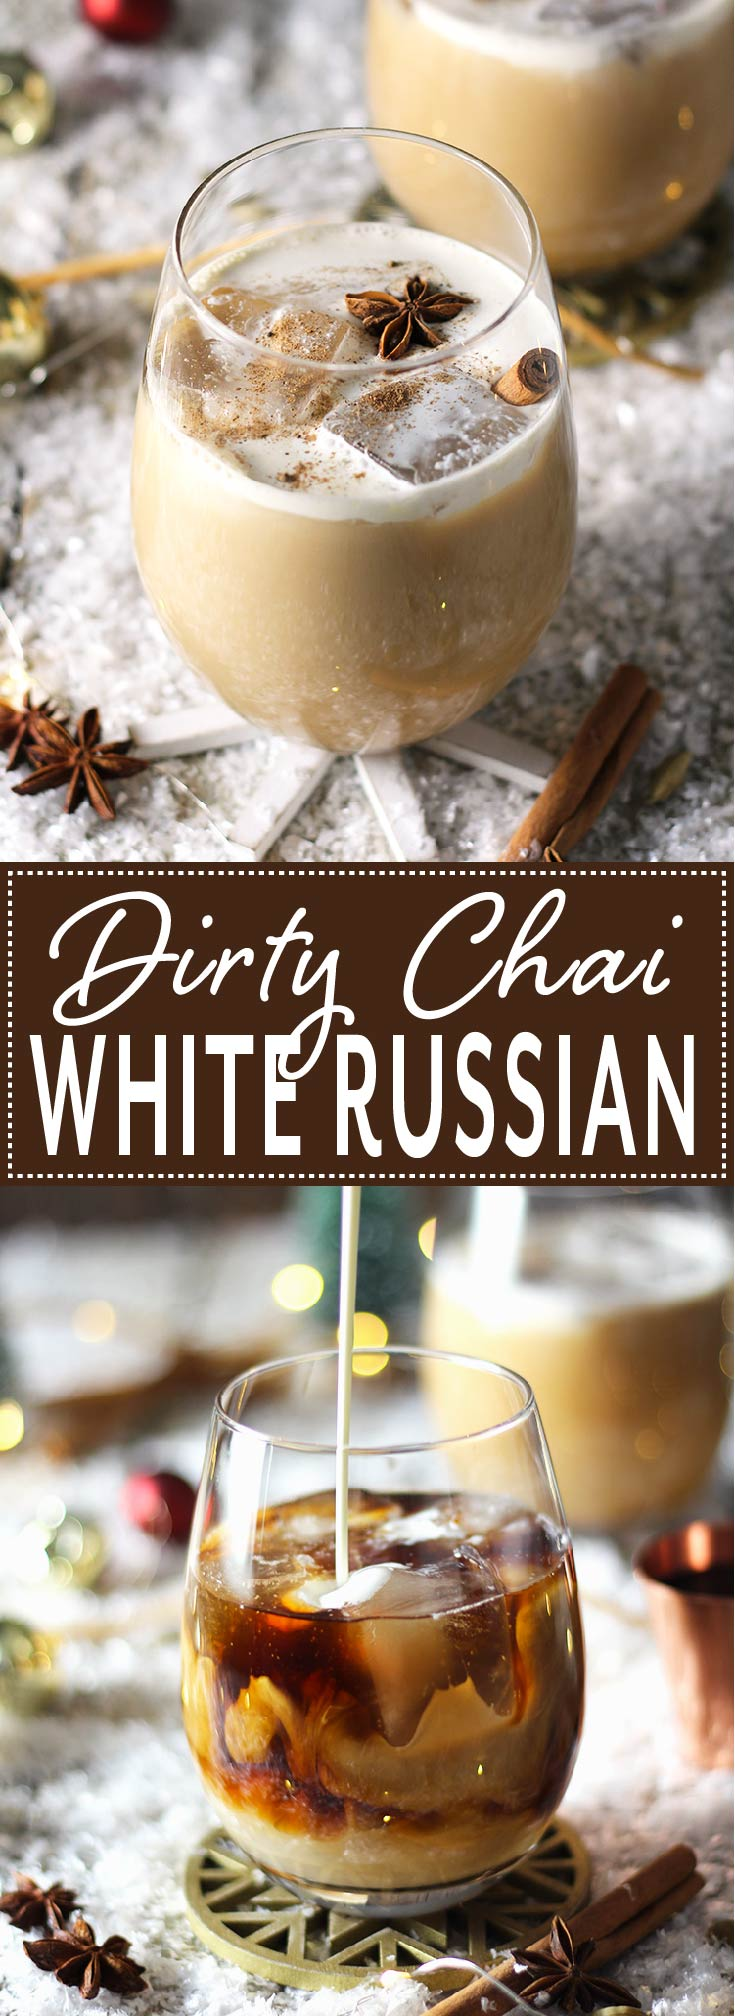 Classic White Russian spiced up with homemade coffee and chai syrup. The ultimate holiday drink that everyone will love.